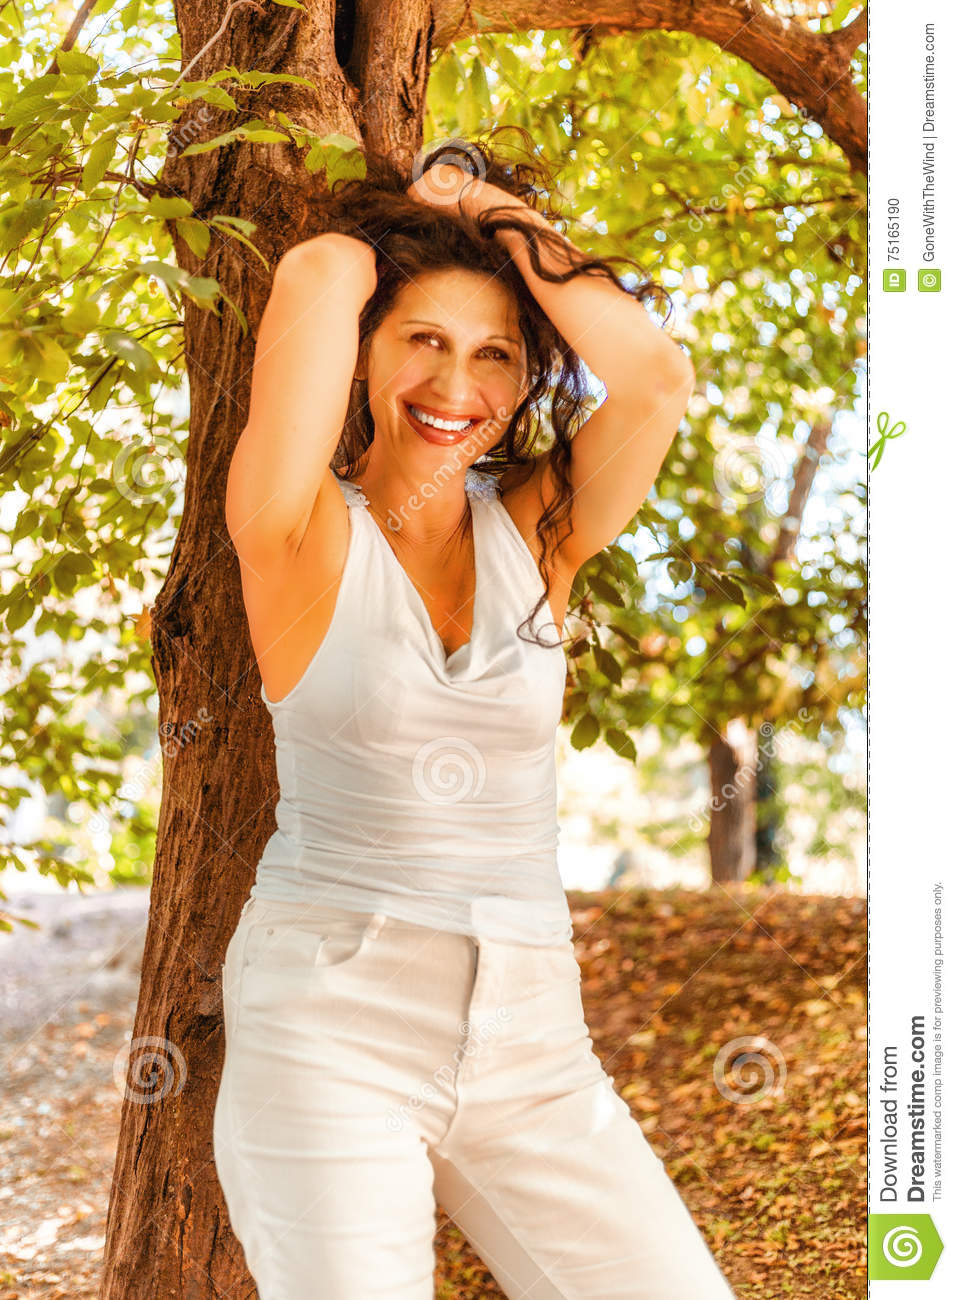 Mature Woman Putting Up Her Hair Stock Photo - Image Of Leaning, Background 75165190-6114